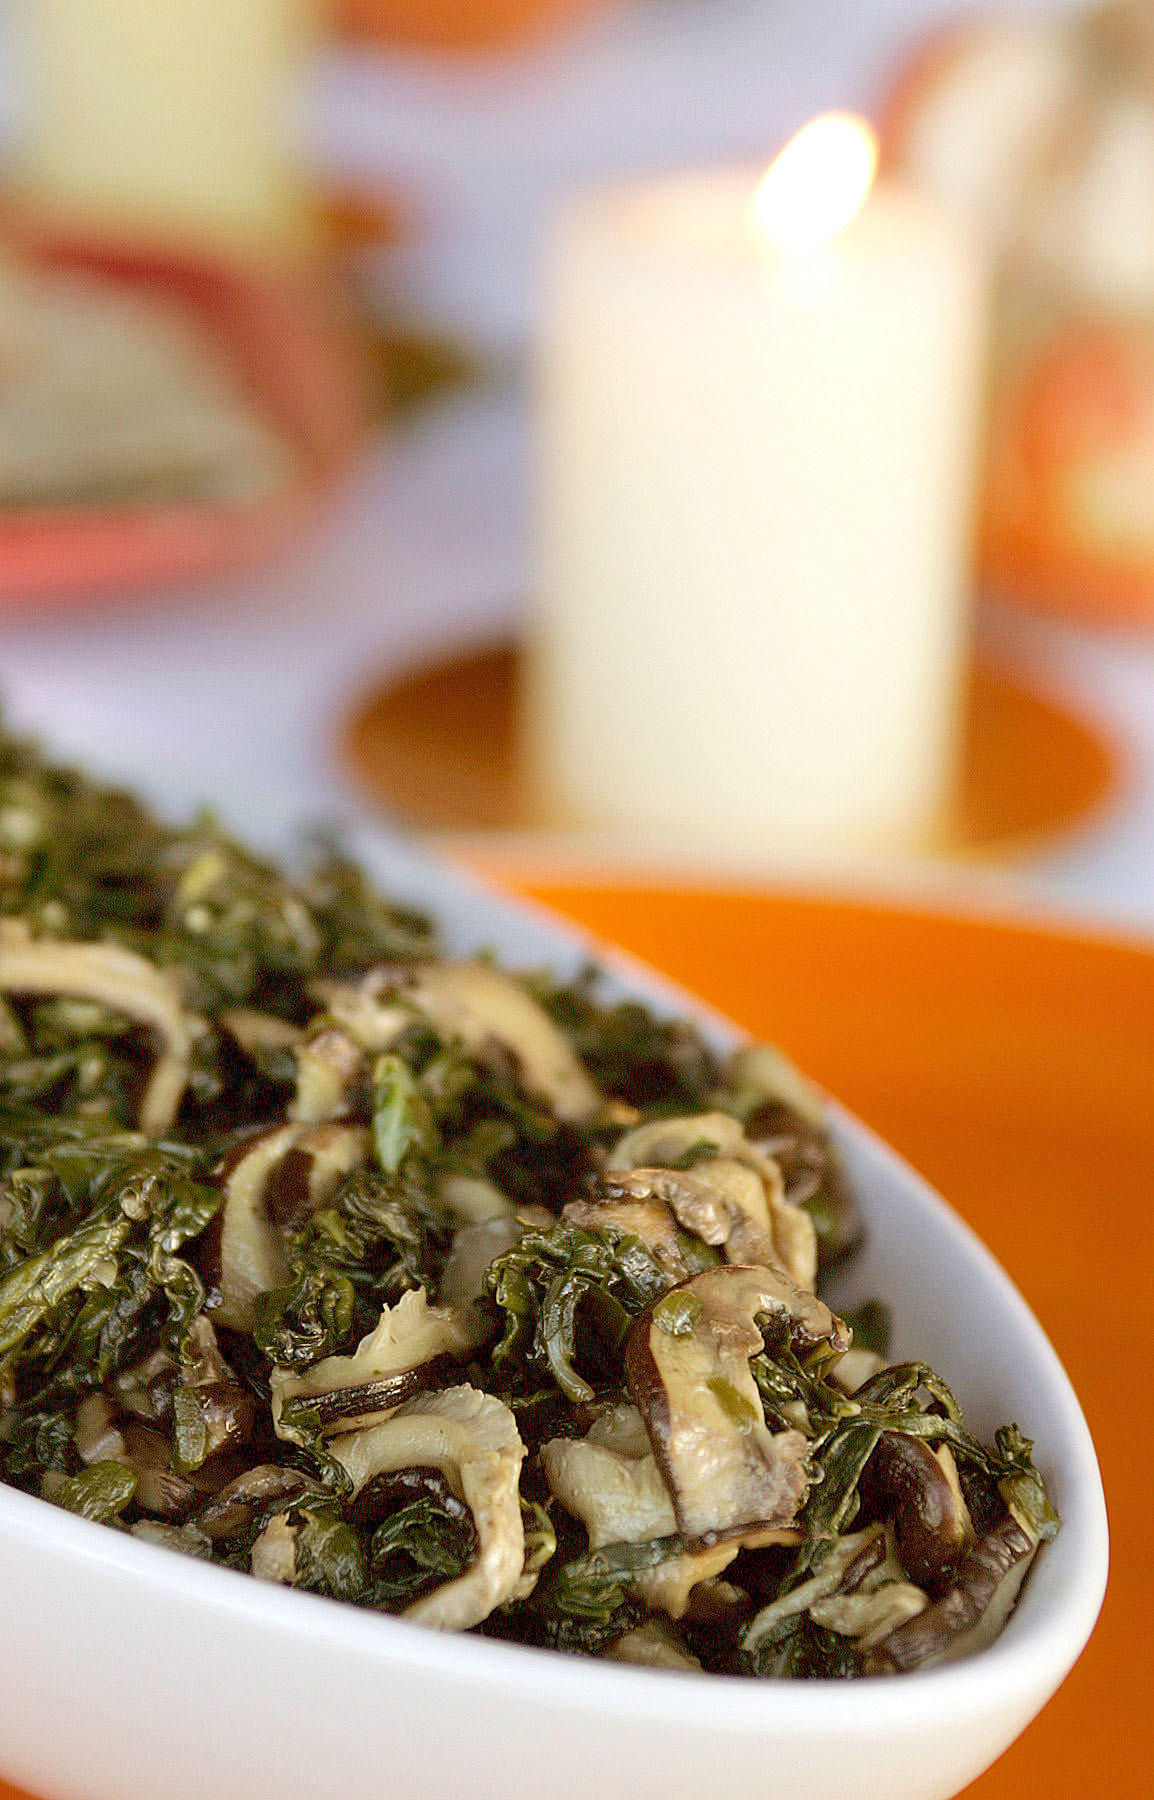 Recipe: Swiss chard and shiitakes with poblanos - California Cookbook